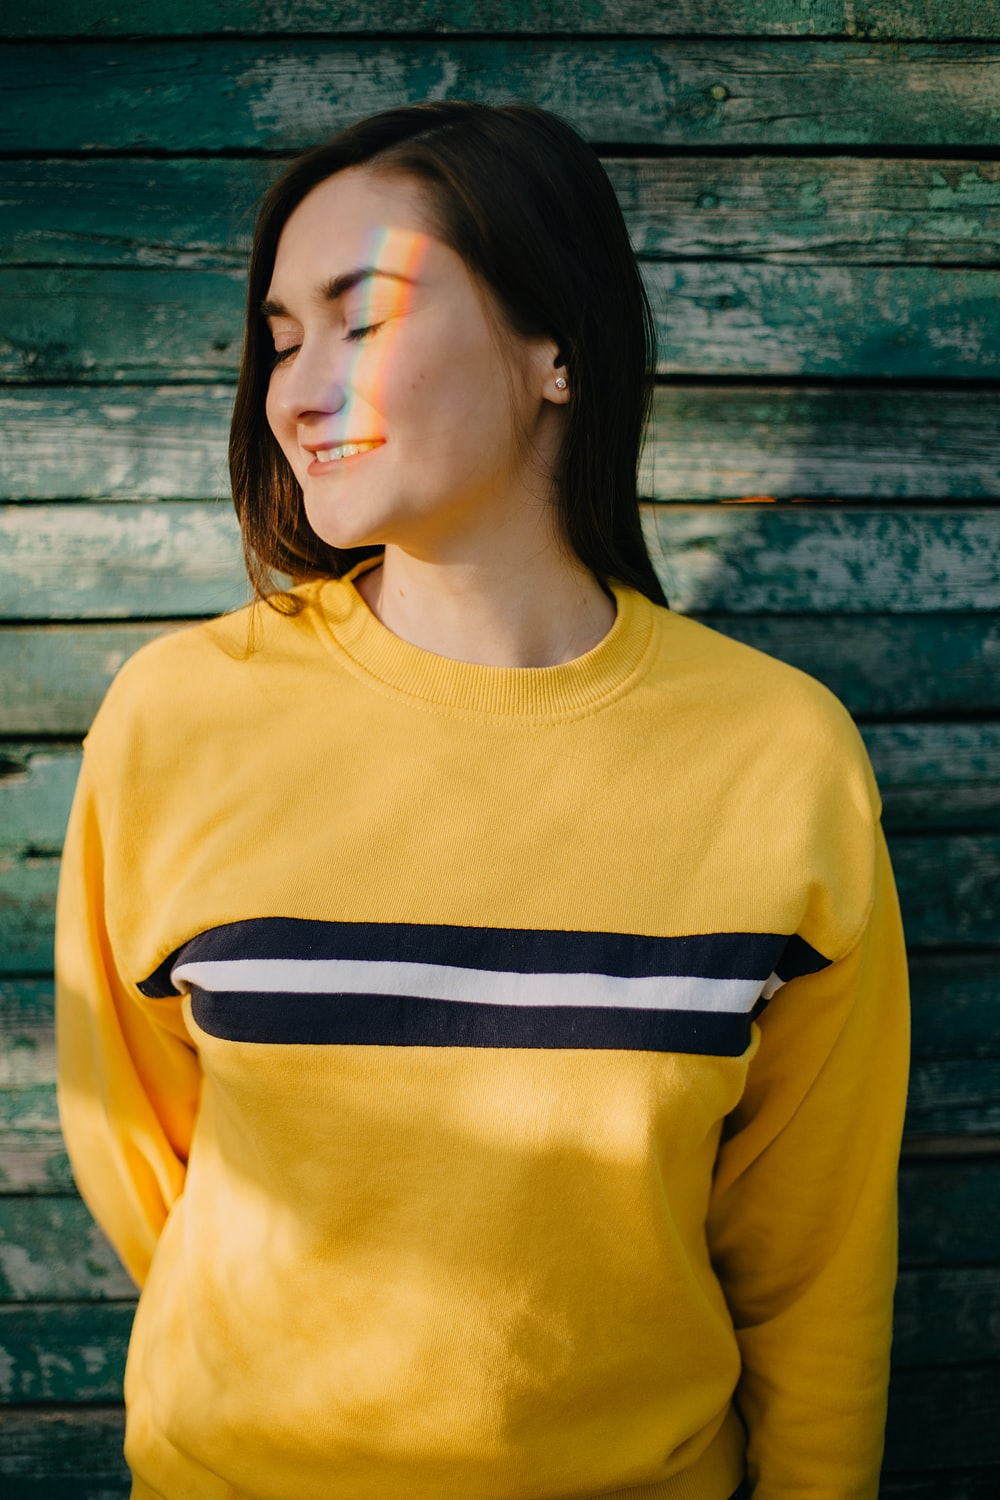 woman in yellow and black crew neck shirt